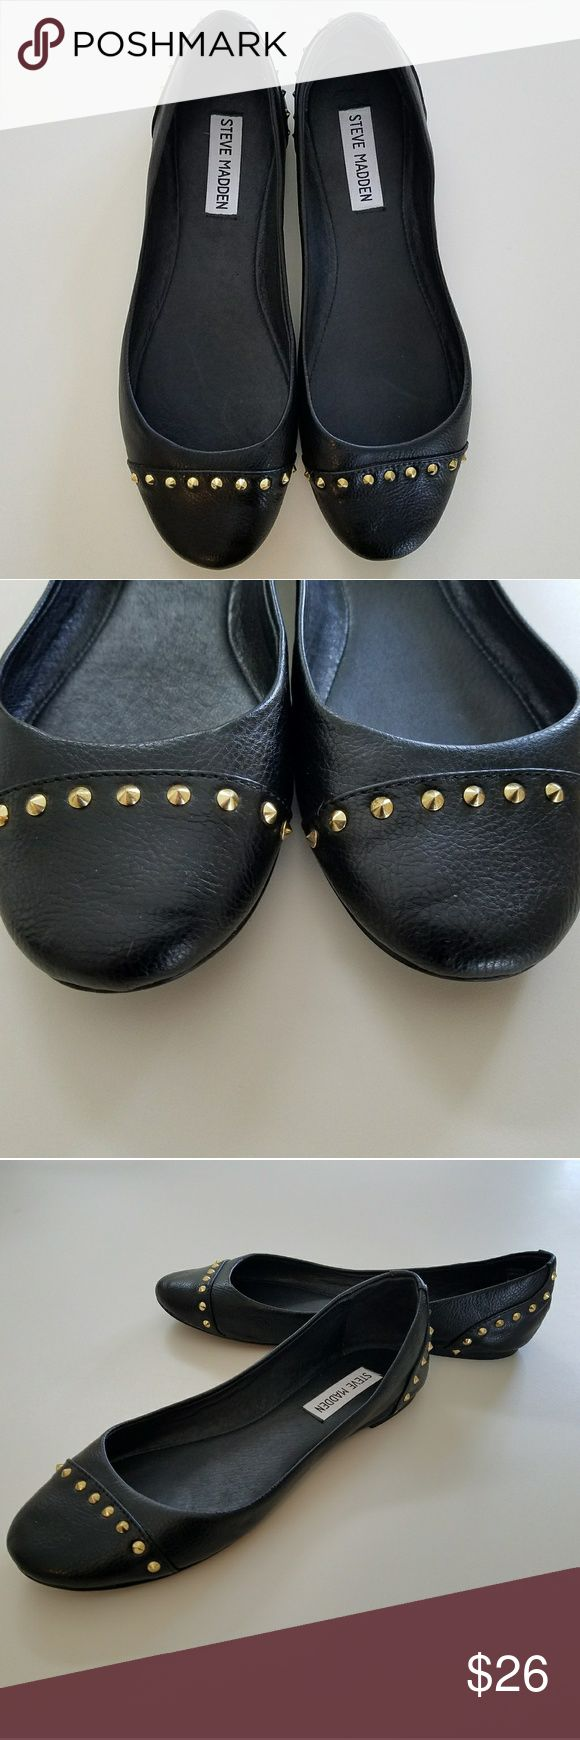 🎀Steve Madden studded ballet shoes🎀 Steve Madden shoes, used, like new Steve Madden Shoes Flats & Loafers